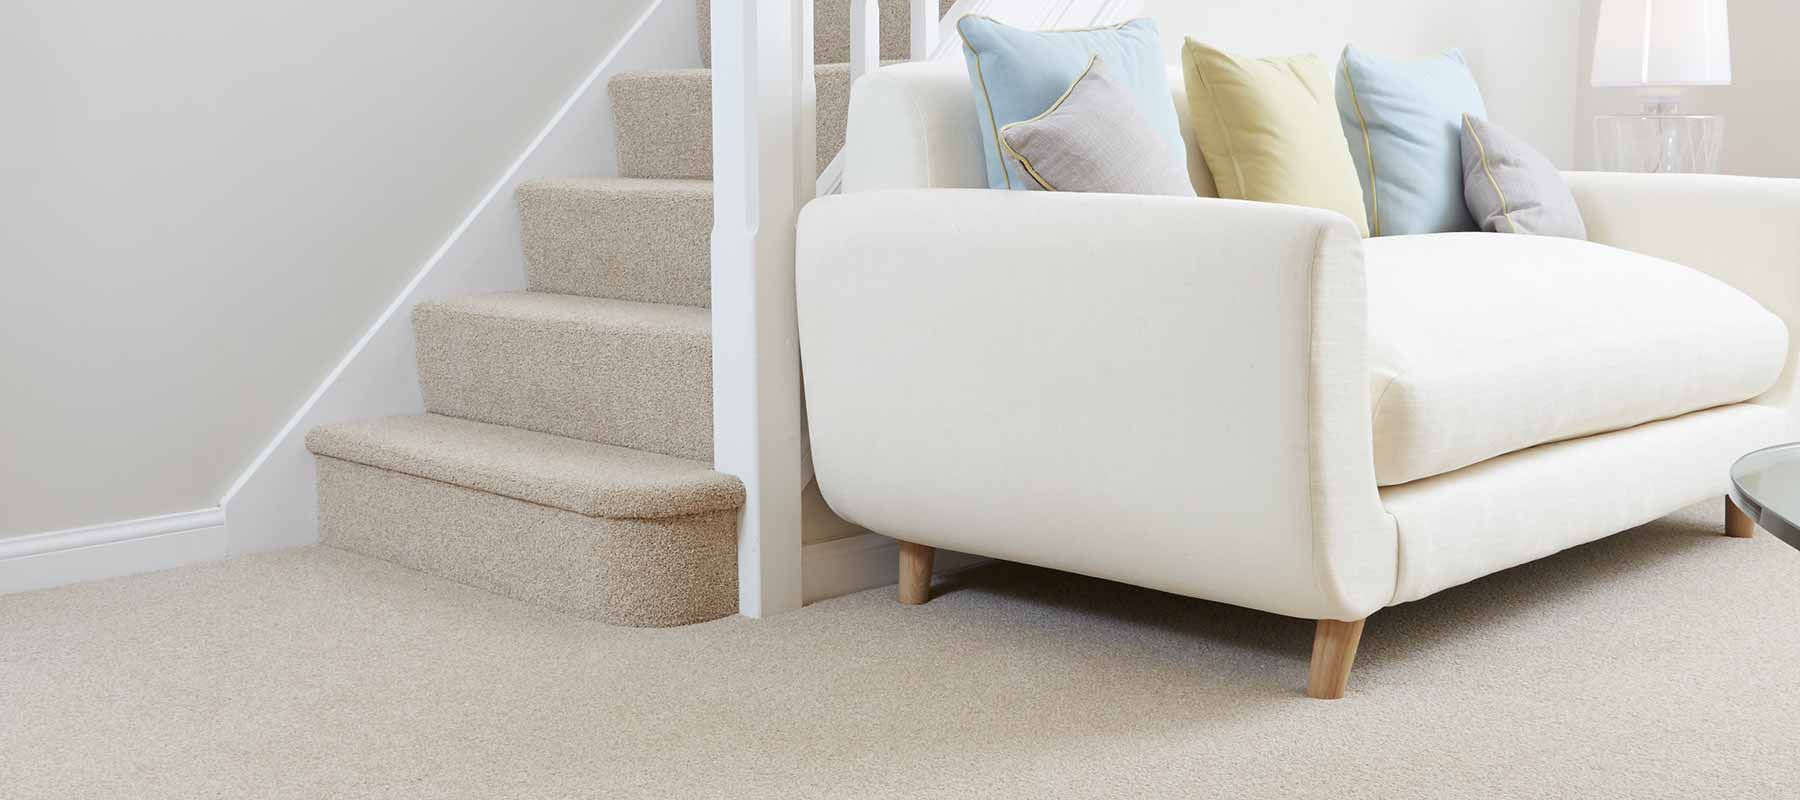 Abingdon Carpet Supplier Bromsgrove